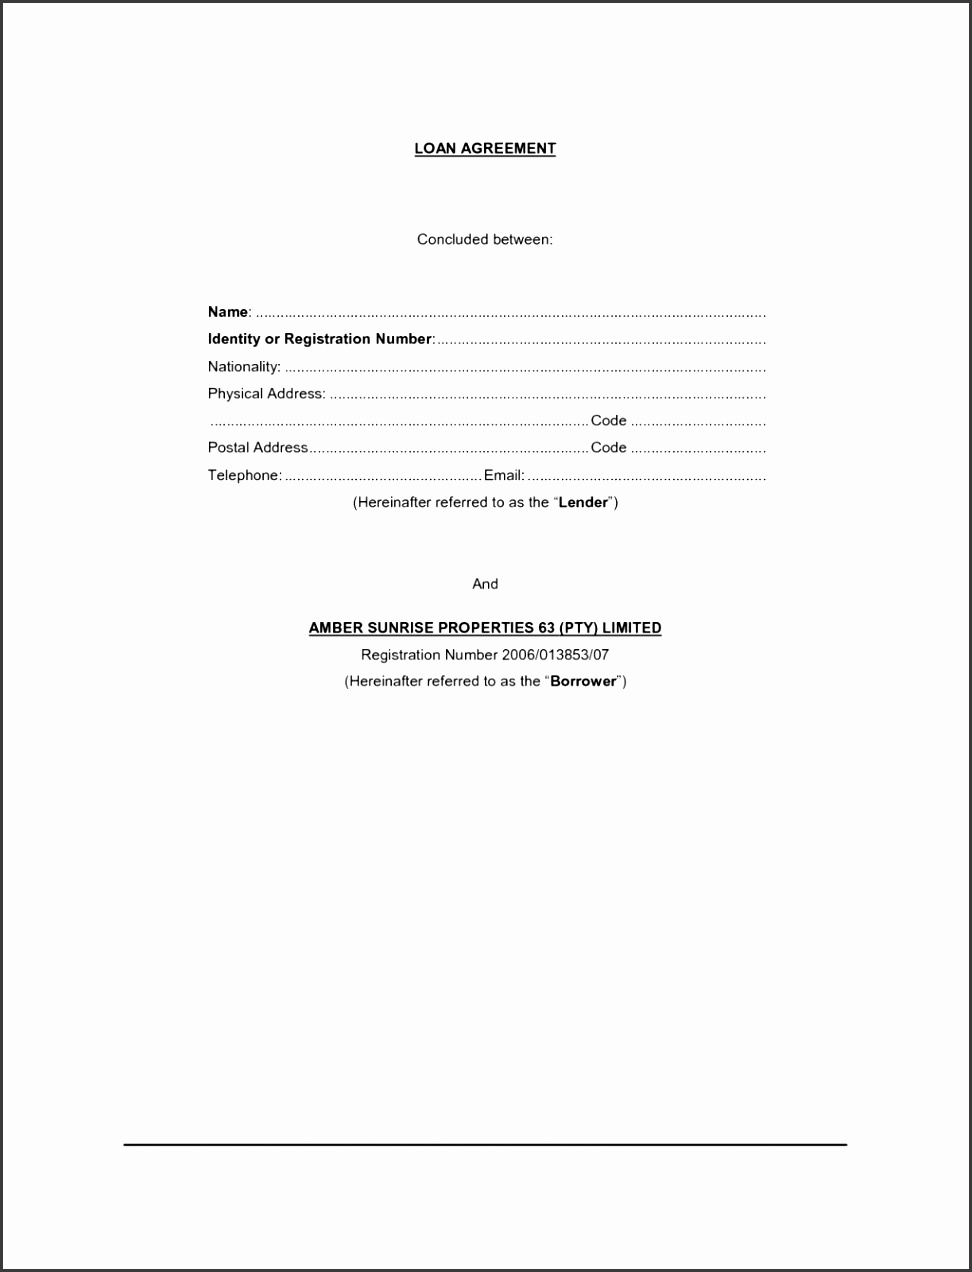 Sample Loan Agreement Letter Templates Free Simple Form Best Template Design For Divorce Contract Pdf